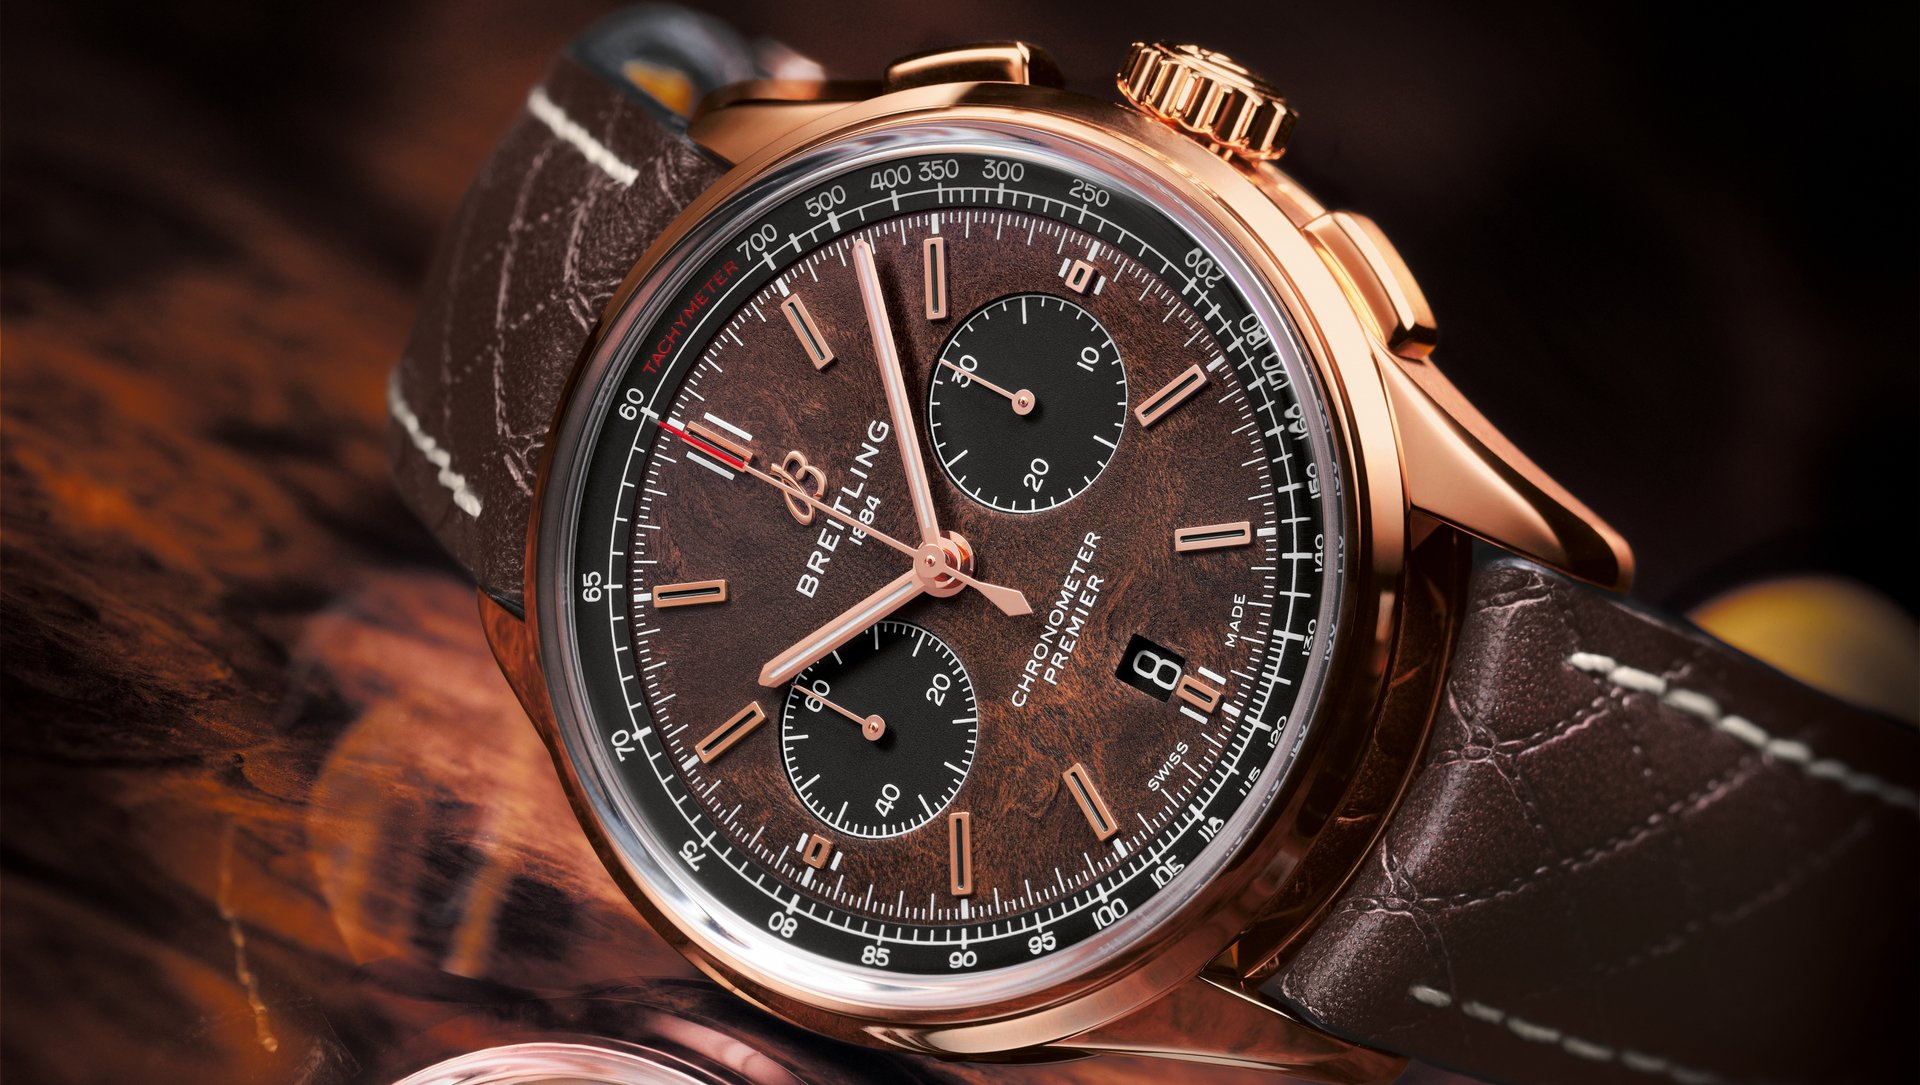 https://static.breitling.cn/media/wysiwyg/news/19-03-05/1.jpg